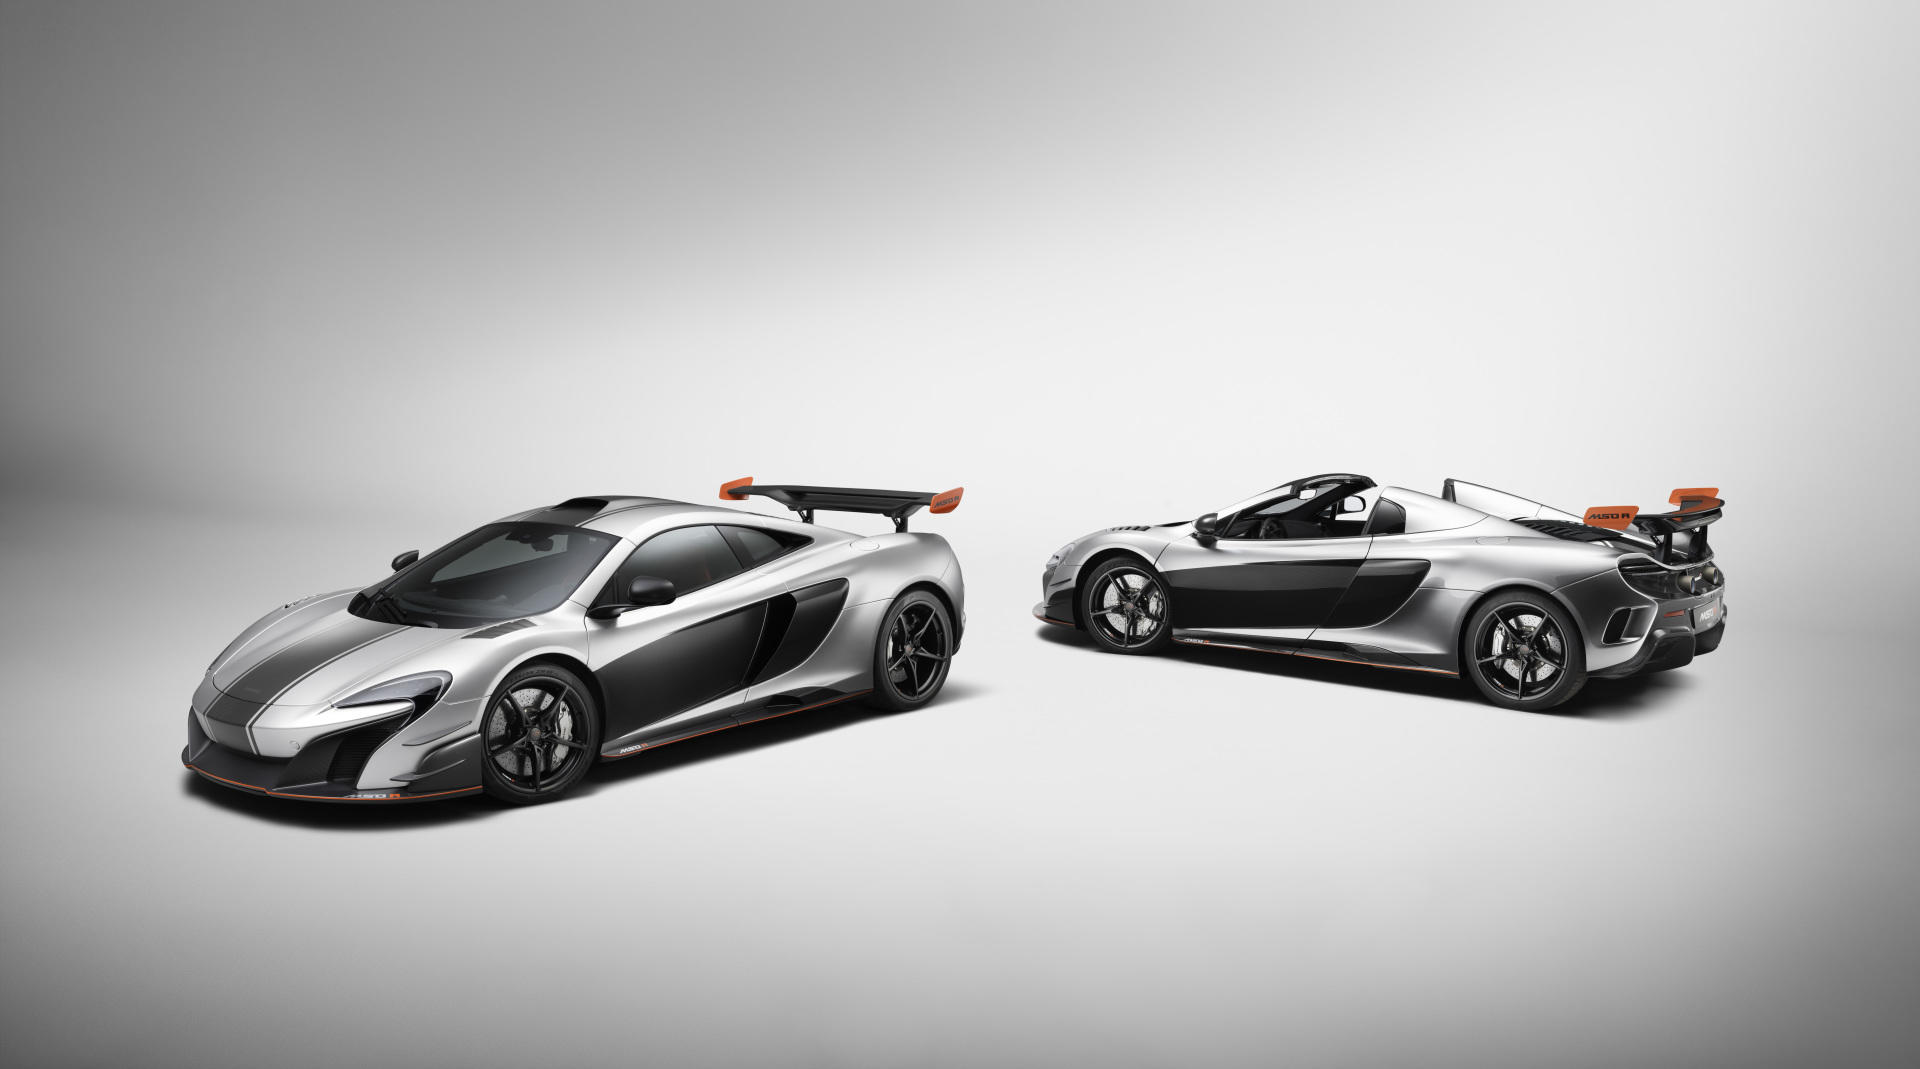 The MSO R is a 688-horsepower sports car custom-built by McLaren and of which only two units will exist